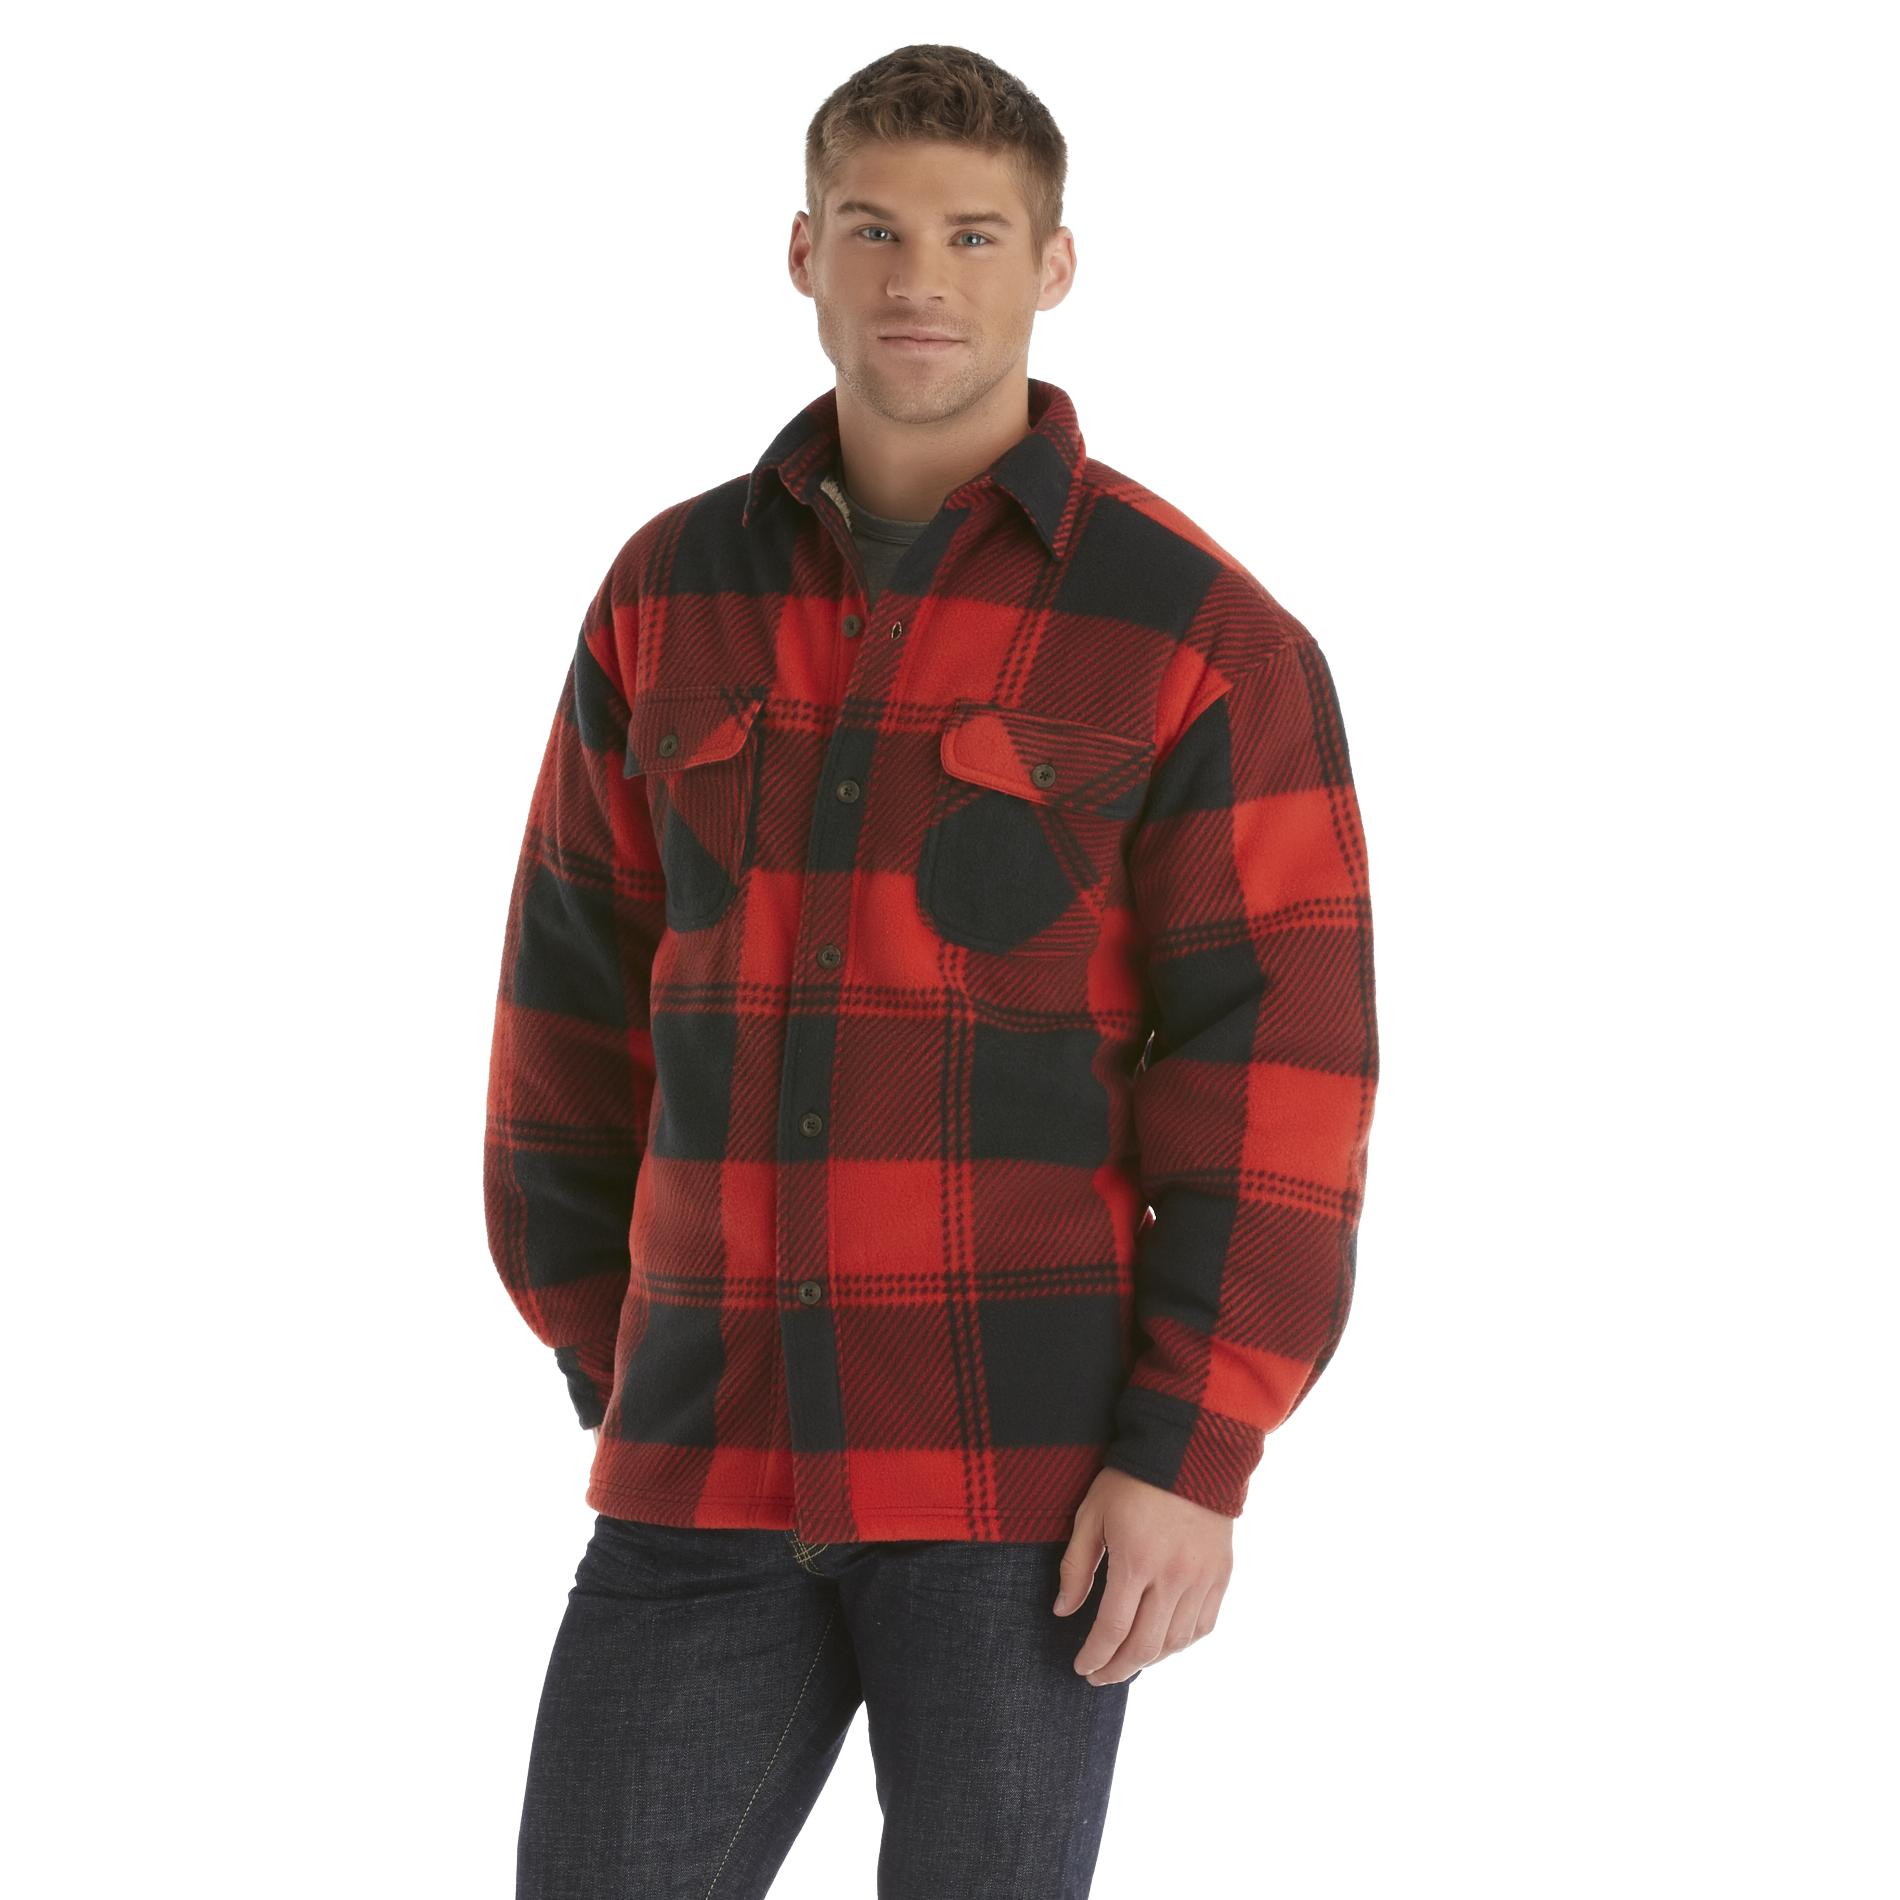 Men's Fleece Shirt Jacket - Large Plaid